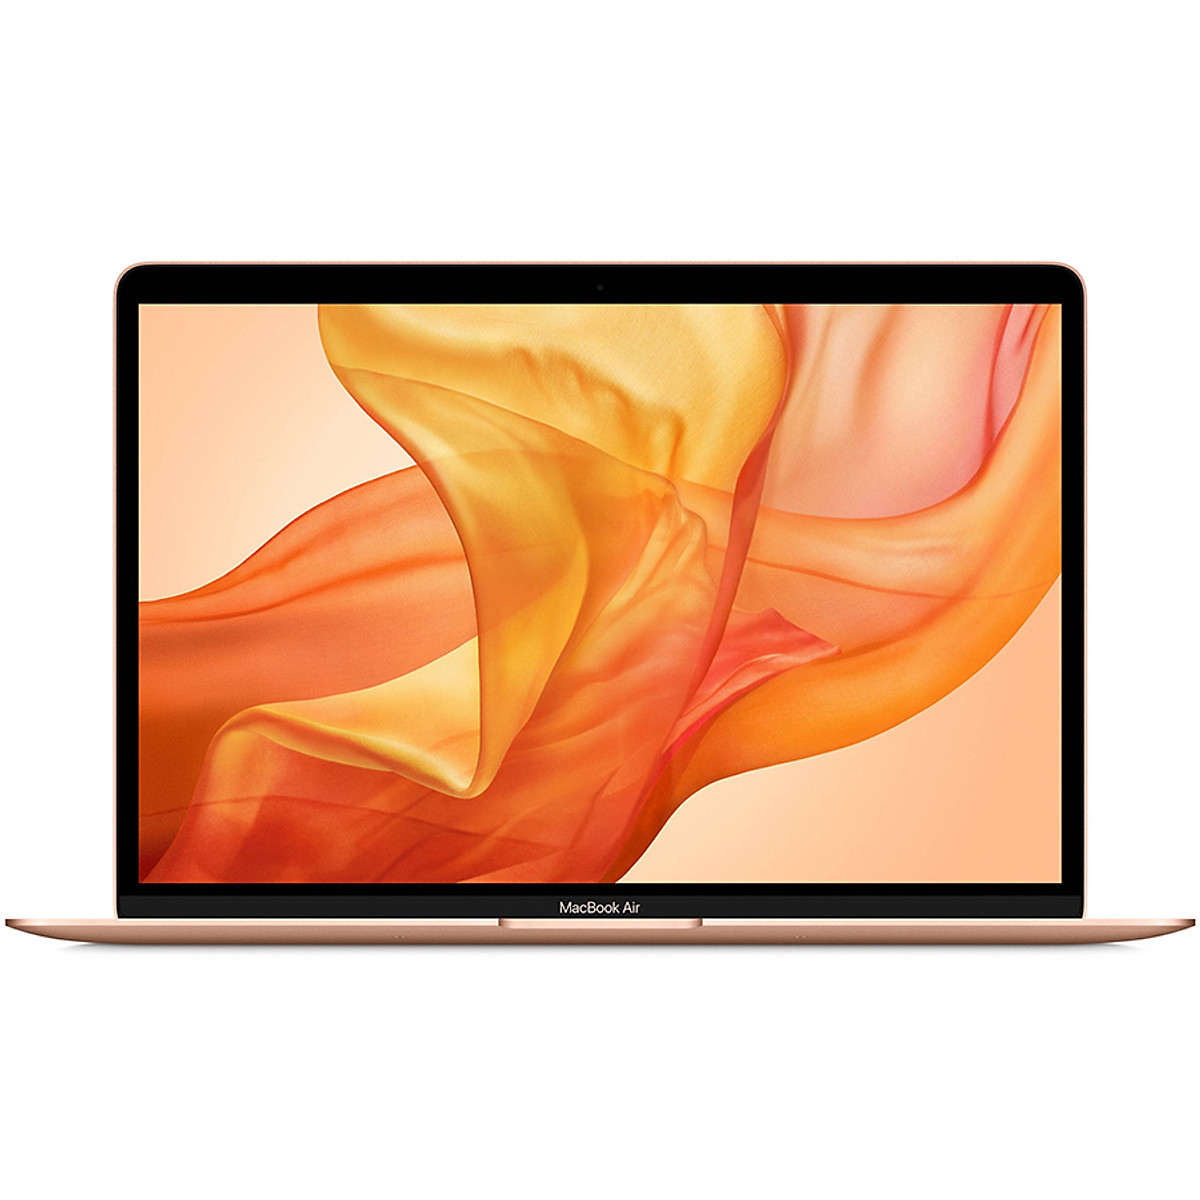 So Sánh Giá Macbook Air 2020 - 13 Inchs (i5-10th/ 8GB/ 512GB)